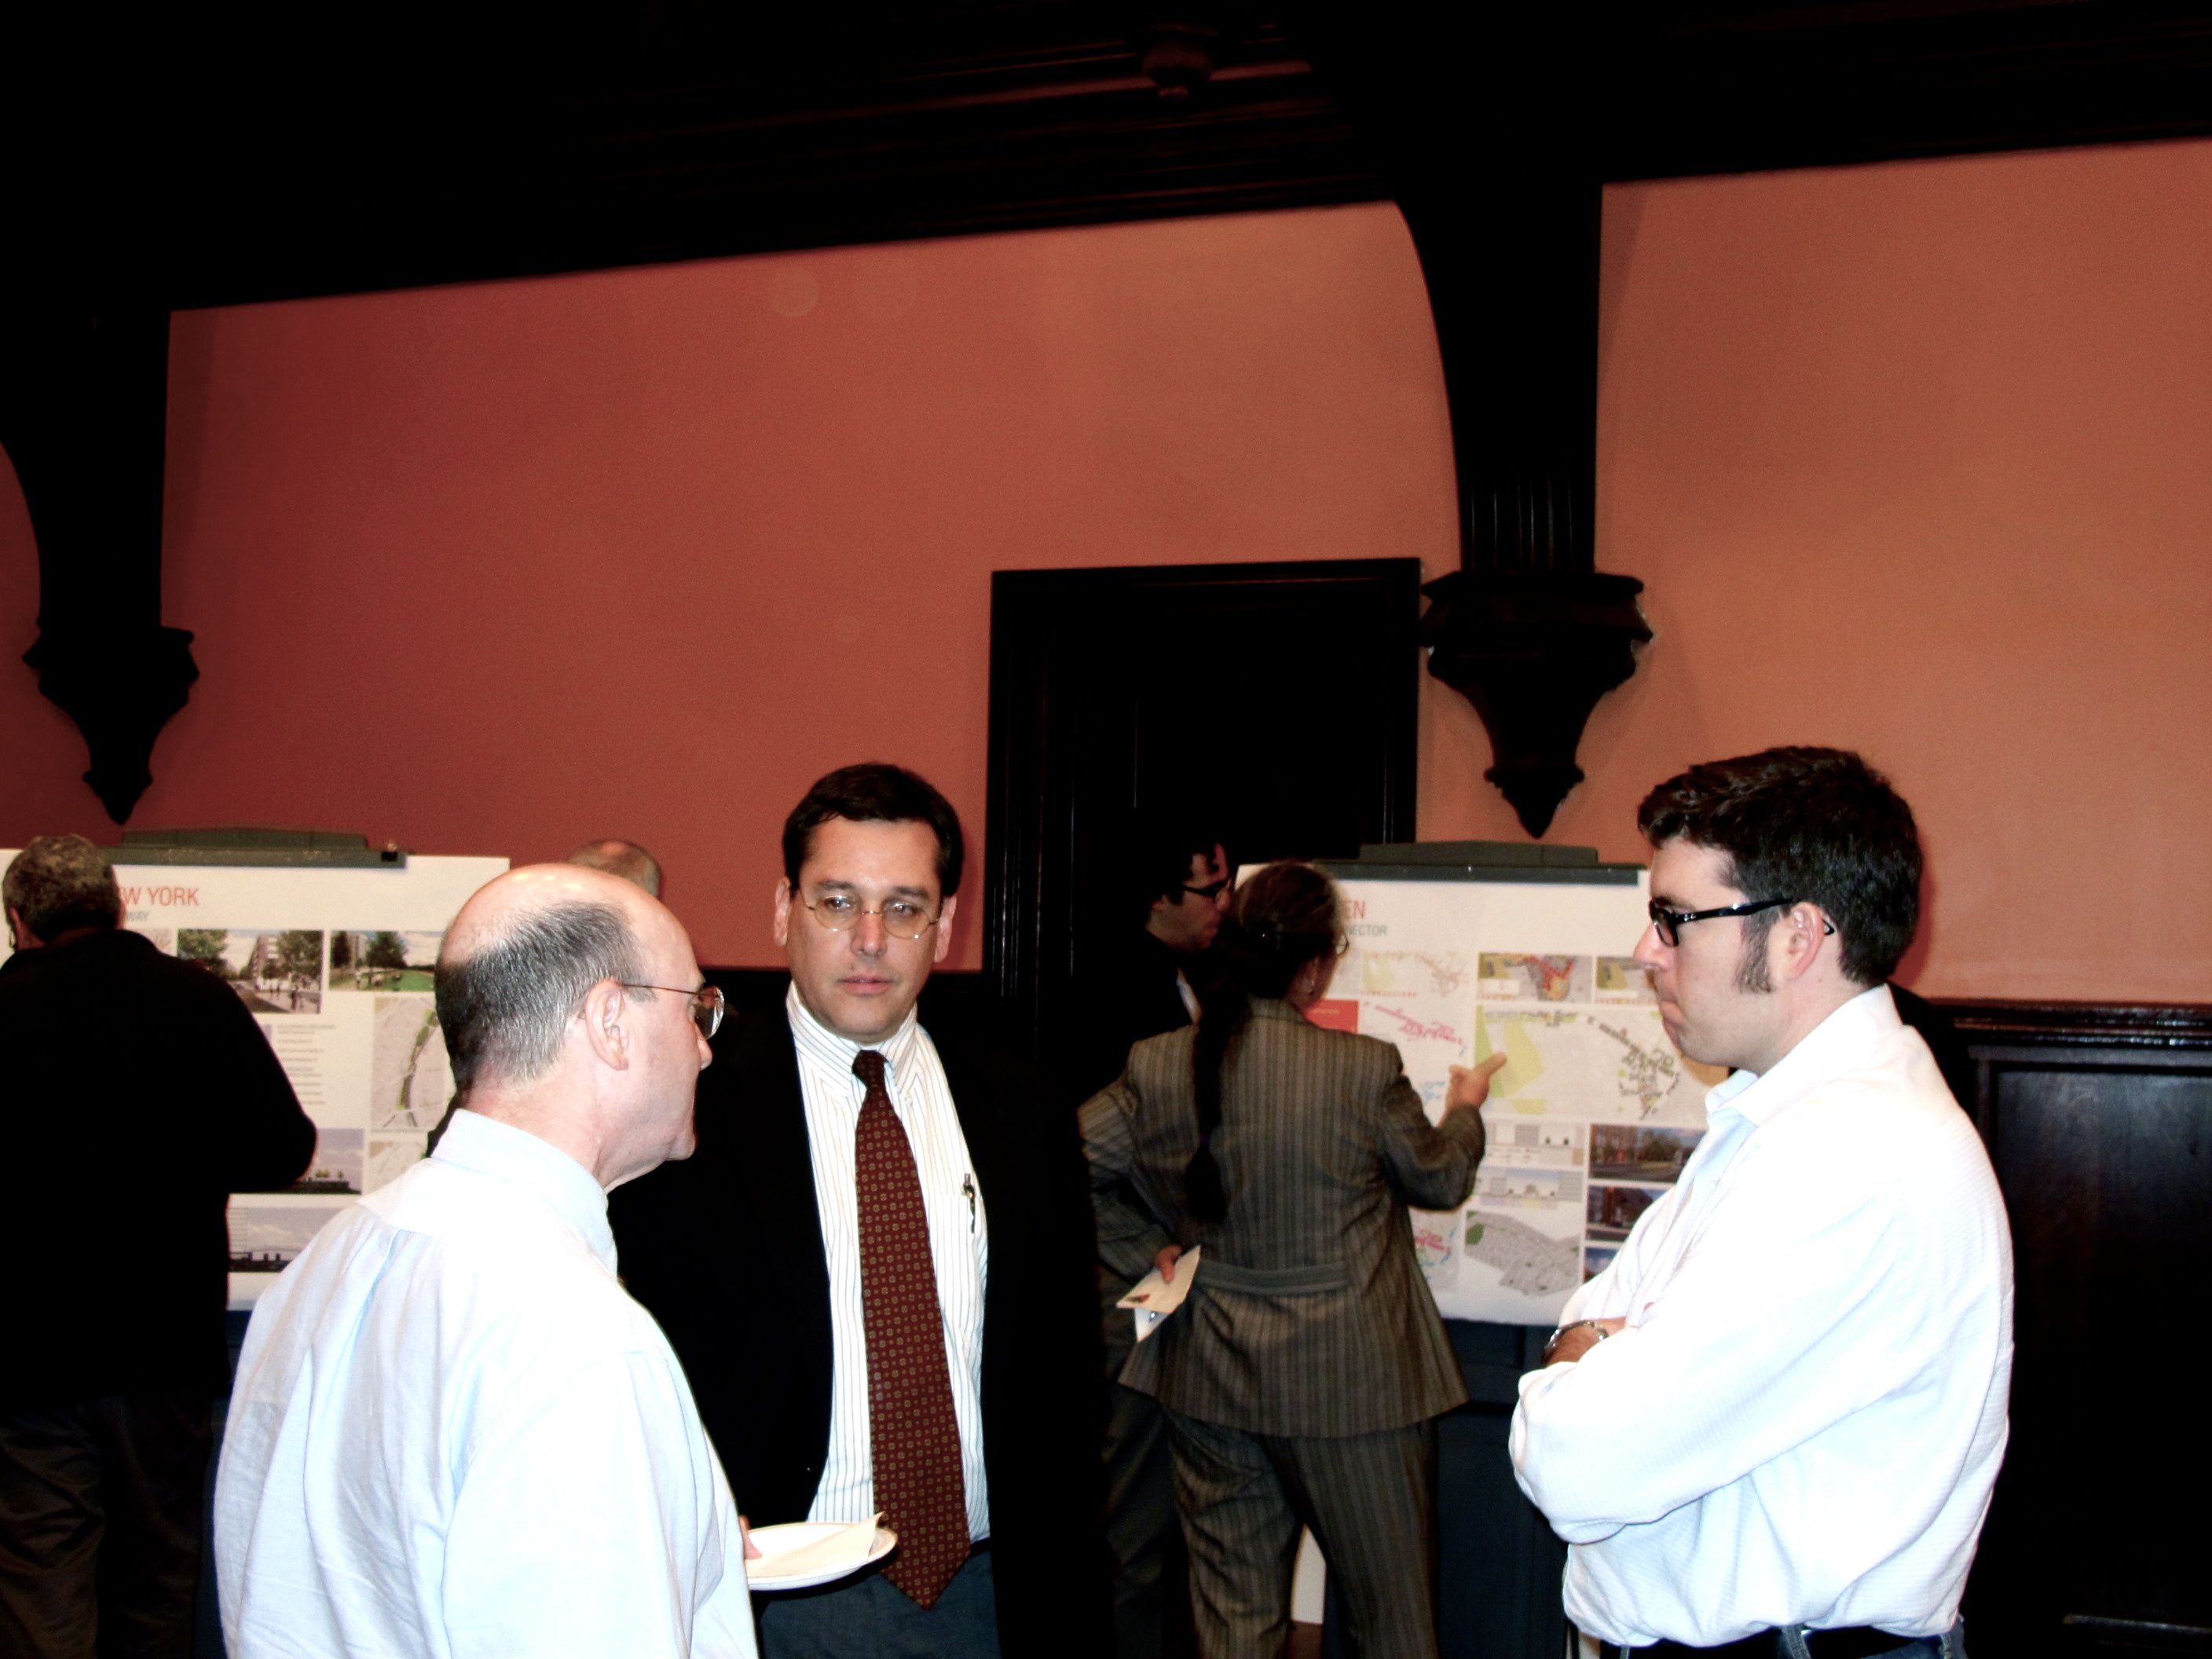 From left: PennDOT's Chuck Davies, Harris Steinberg of PennPraxis and URS planner Doug Robbins discuss presentations